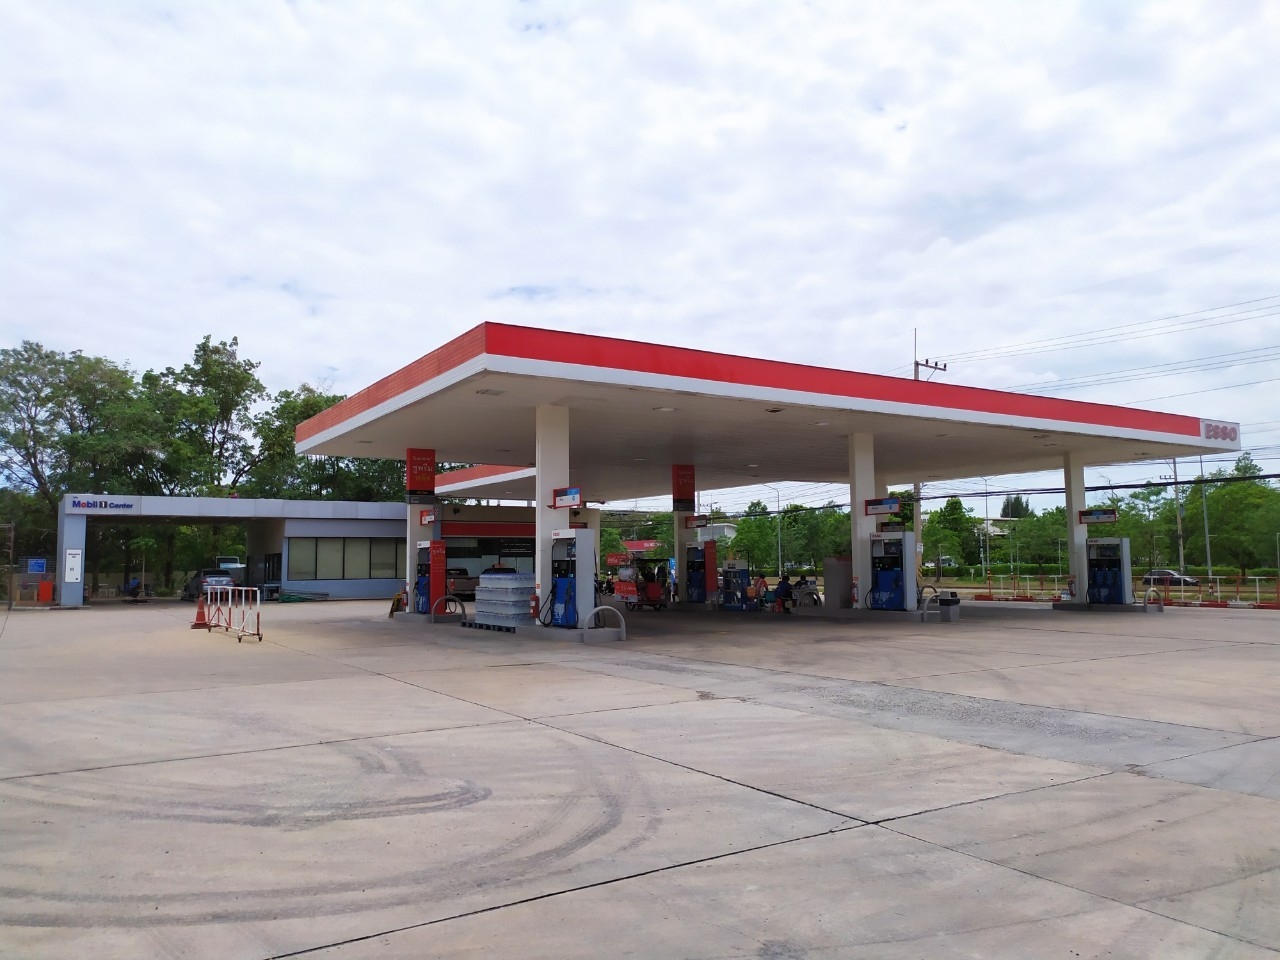 For SaleFactoryKorat KhaoYai : Selling a gas station business Good location in the city Ready to run the business of Mueang Nakhon Ratchasima District